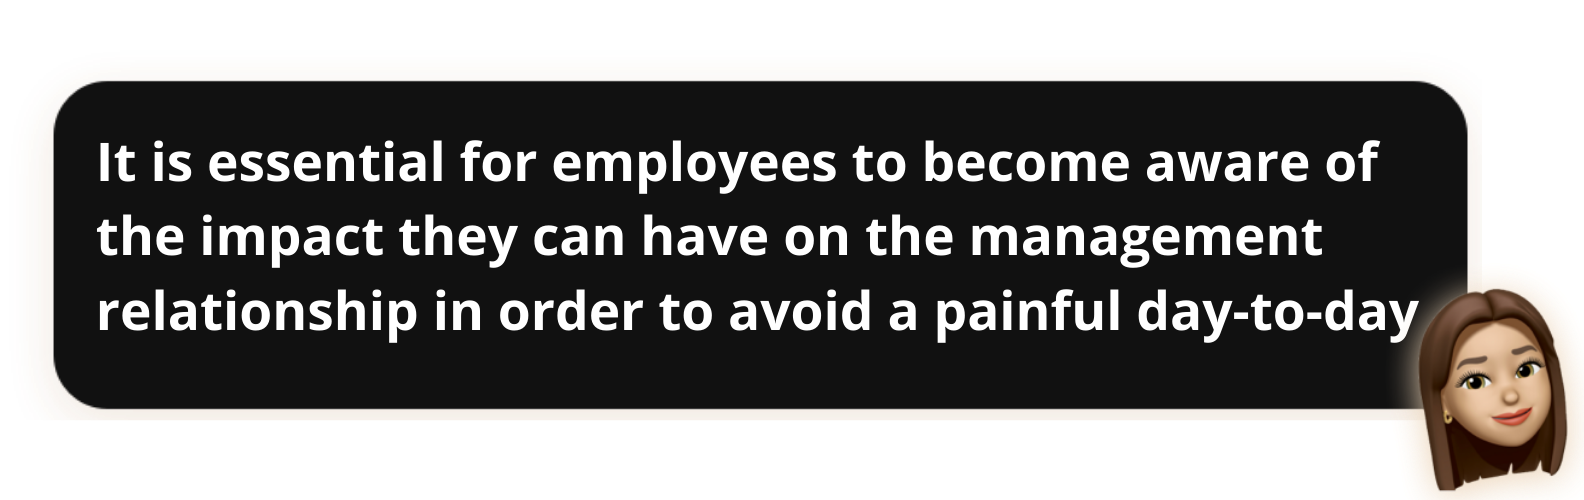 """Manage your boss- """"It is essential for employees to become aware of the impact they can have on the management relationship in order to avoid a painful day-to-day"""" - Popwork"""